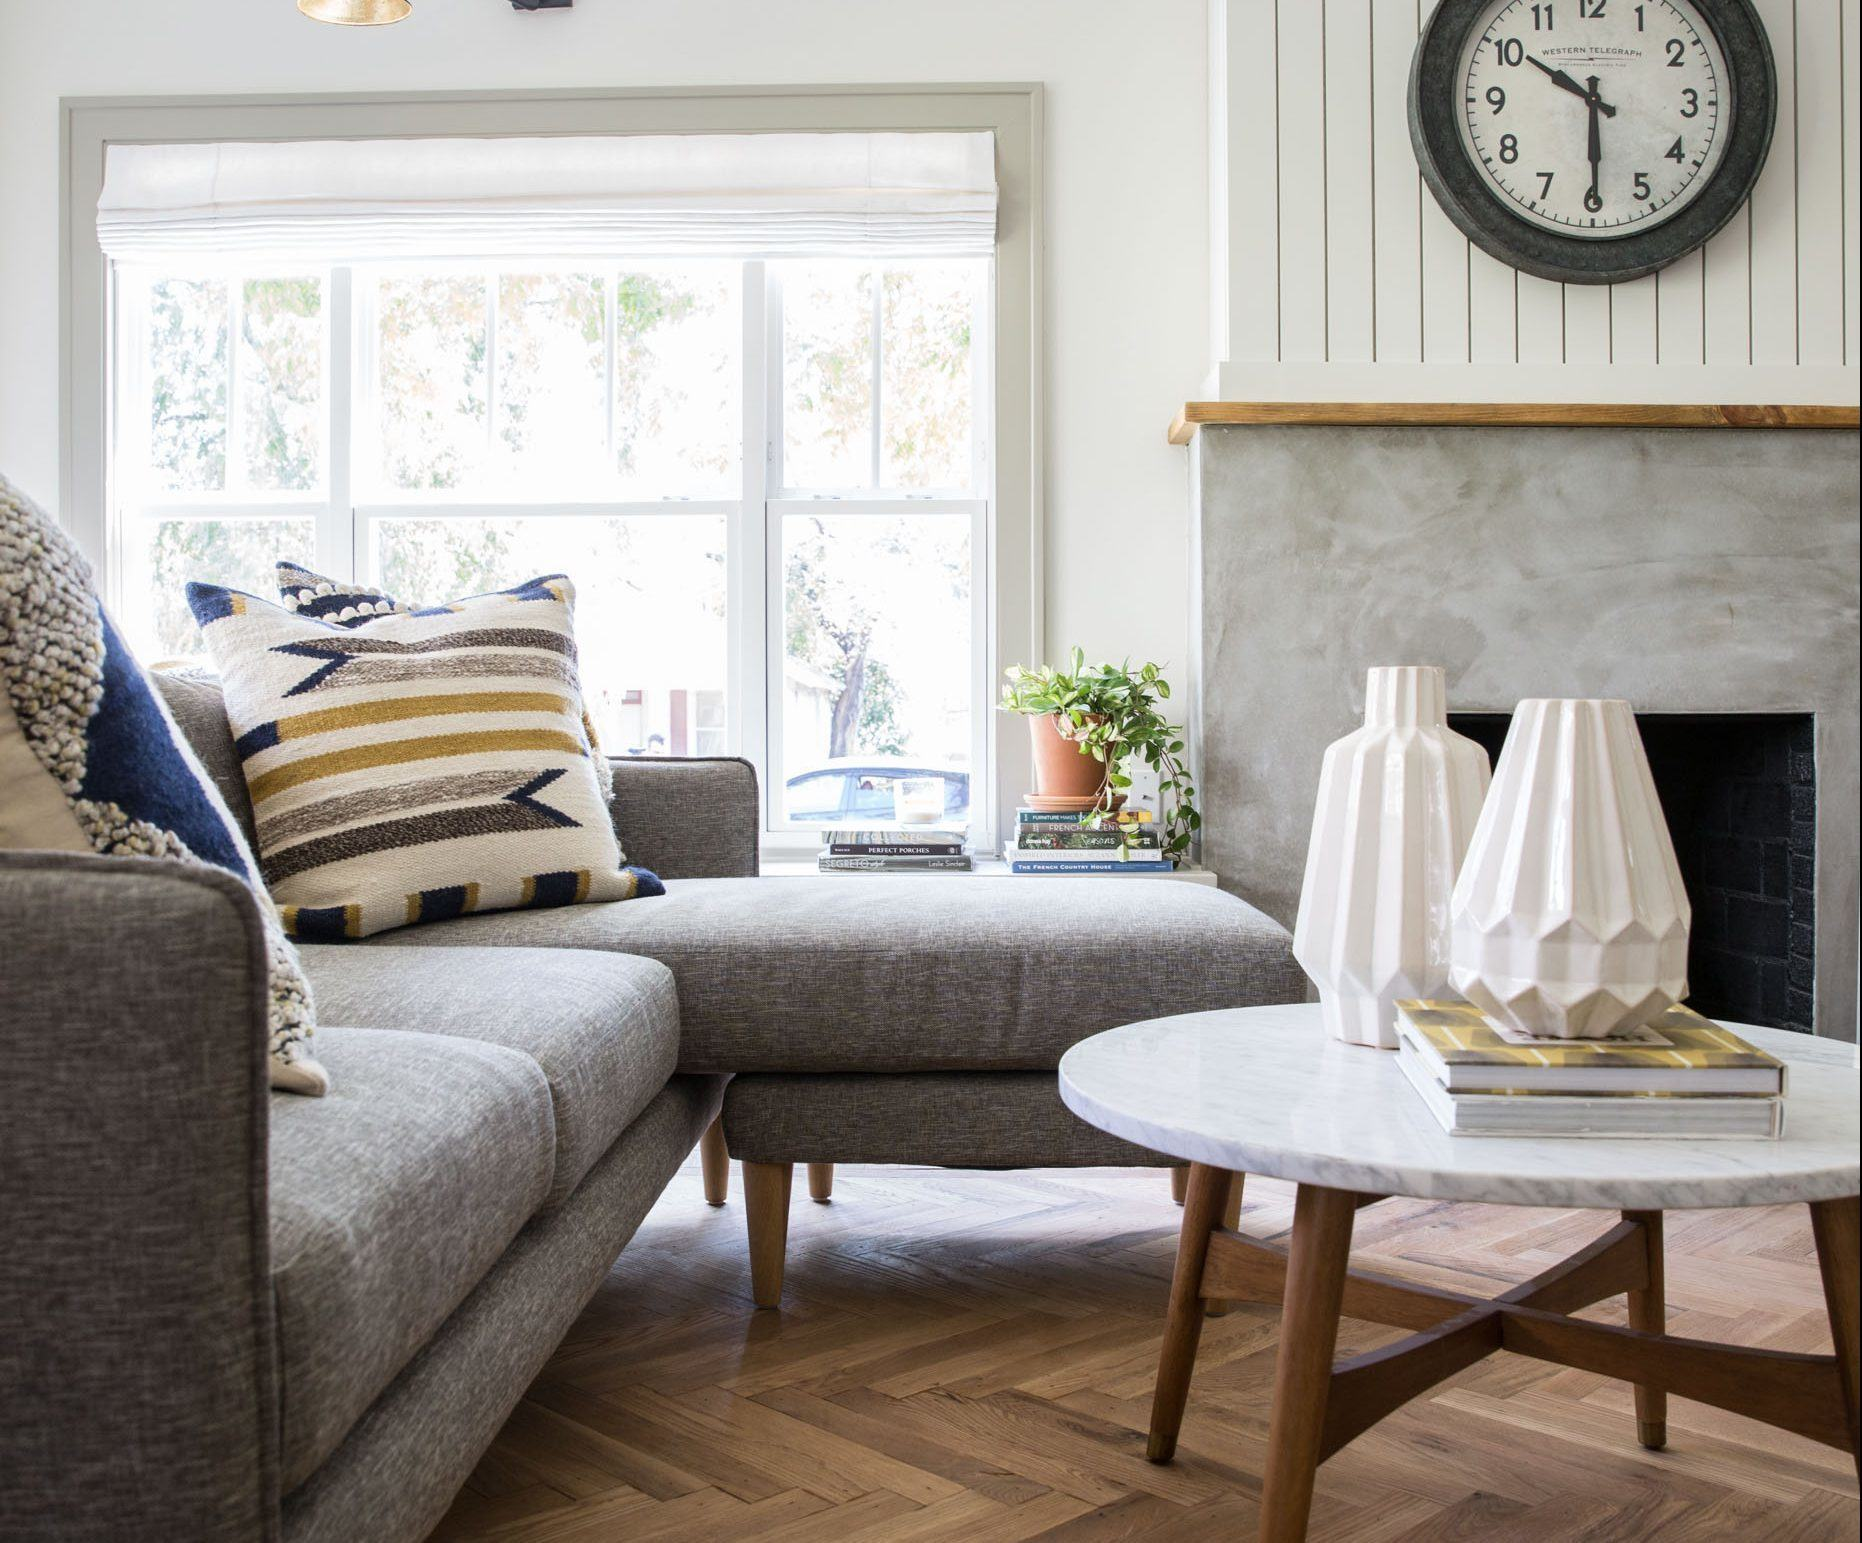 Remodelaholic | Get This Look: Fixer Upper Giraffe House Living Room